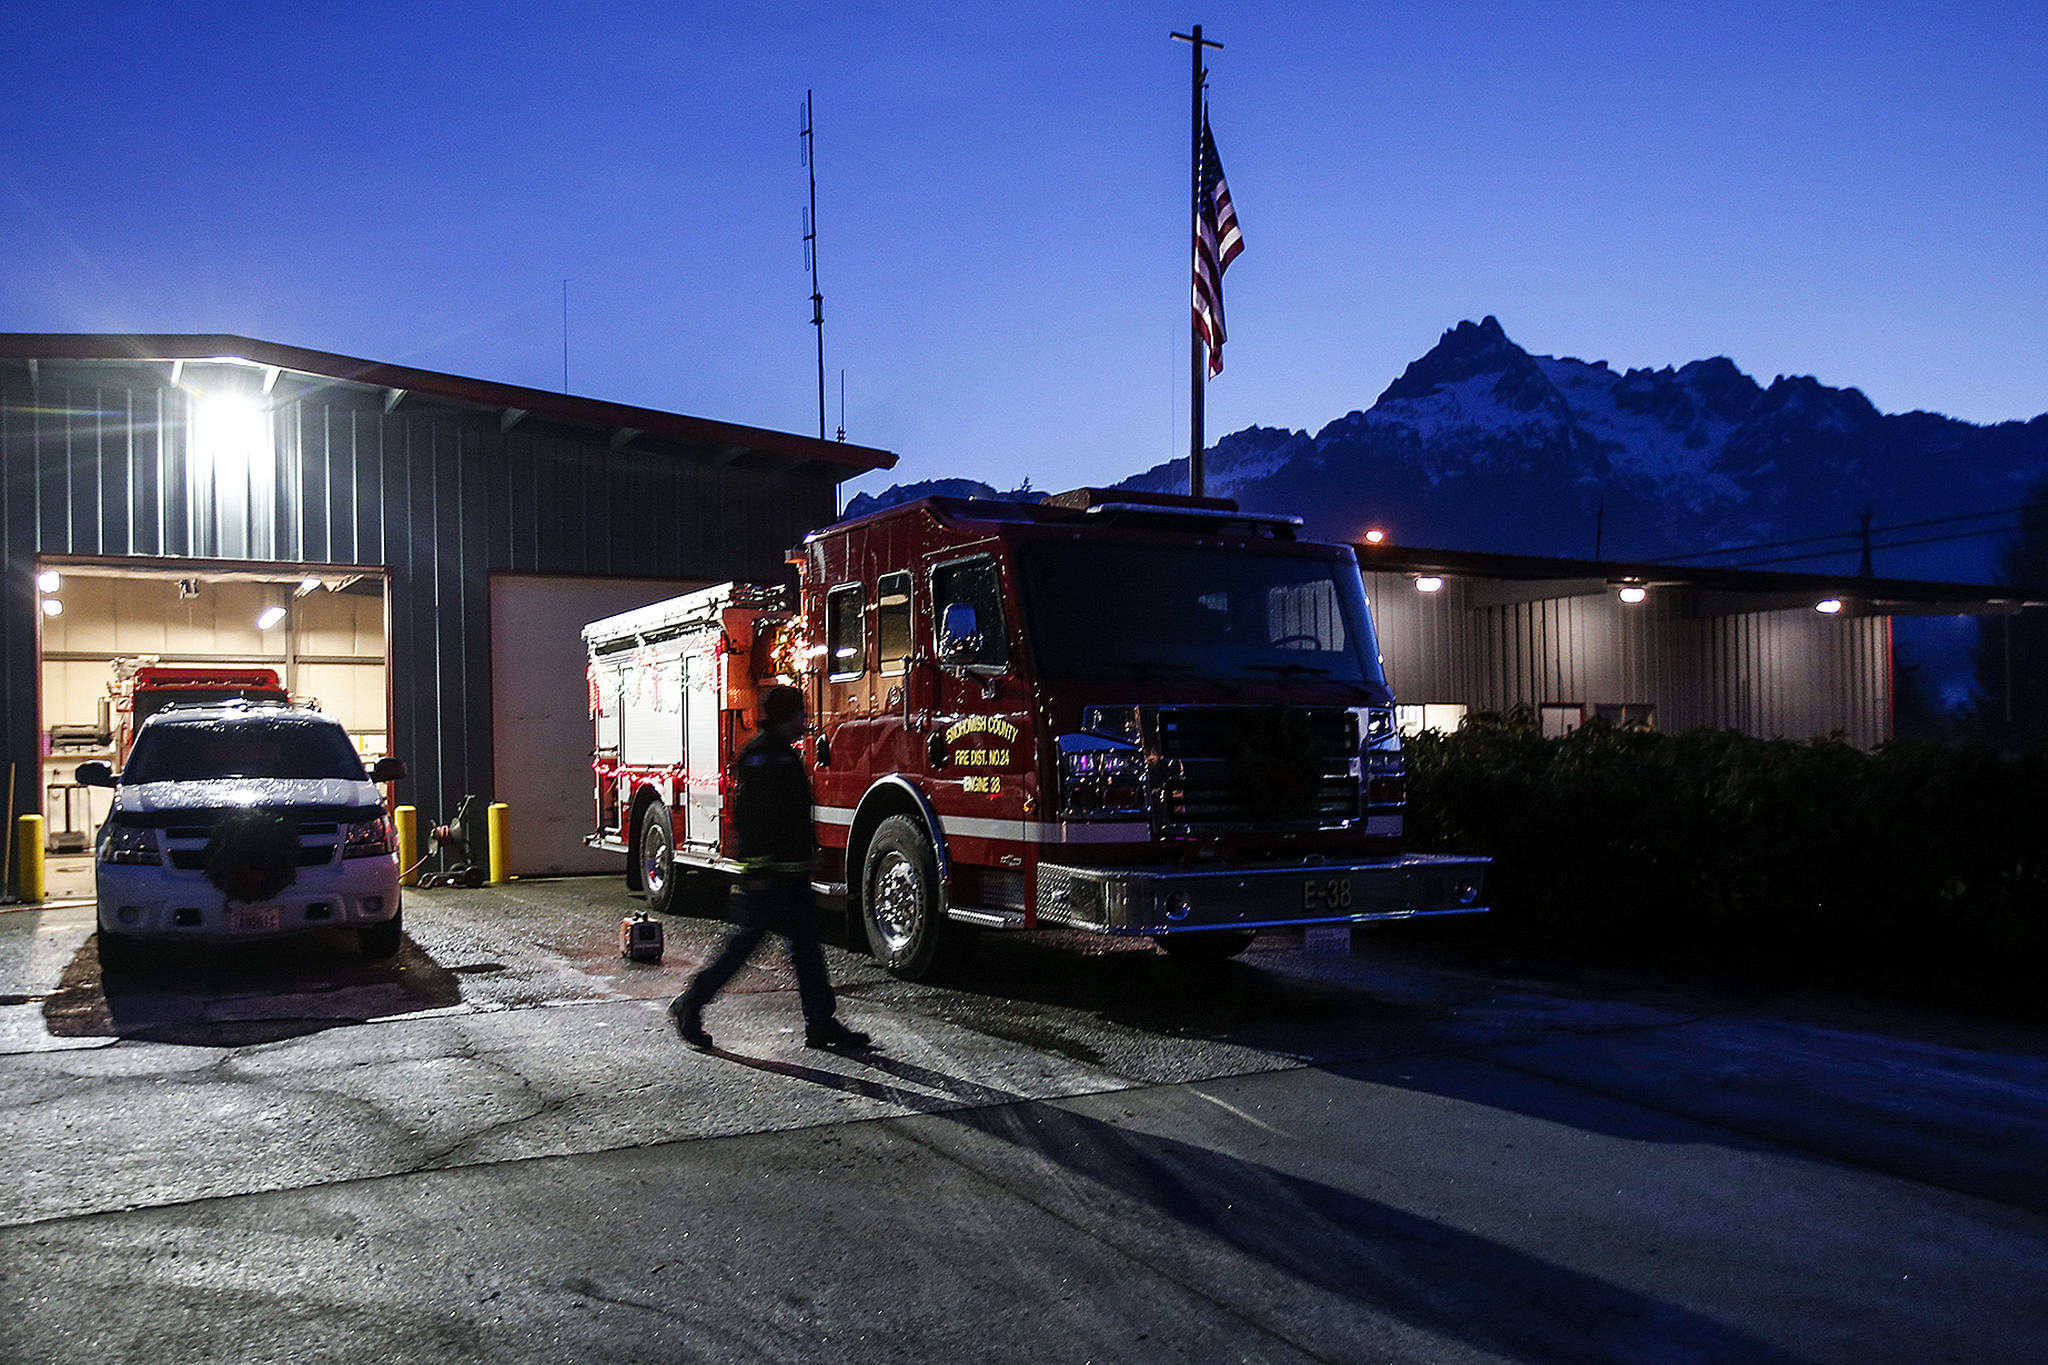 Darrington Fire Capt. Drew Bono walks in front of engine 38 as Whitehorse Mountain glows faintly in the evening light on Tuesday, Dec. 12. Darrington is one of Snohomish County's few towns that rely on a true volunteer fire department. (Ian Terry / The Herald)